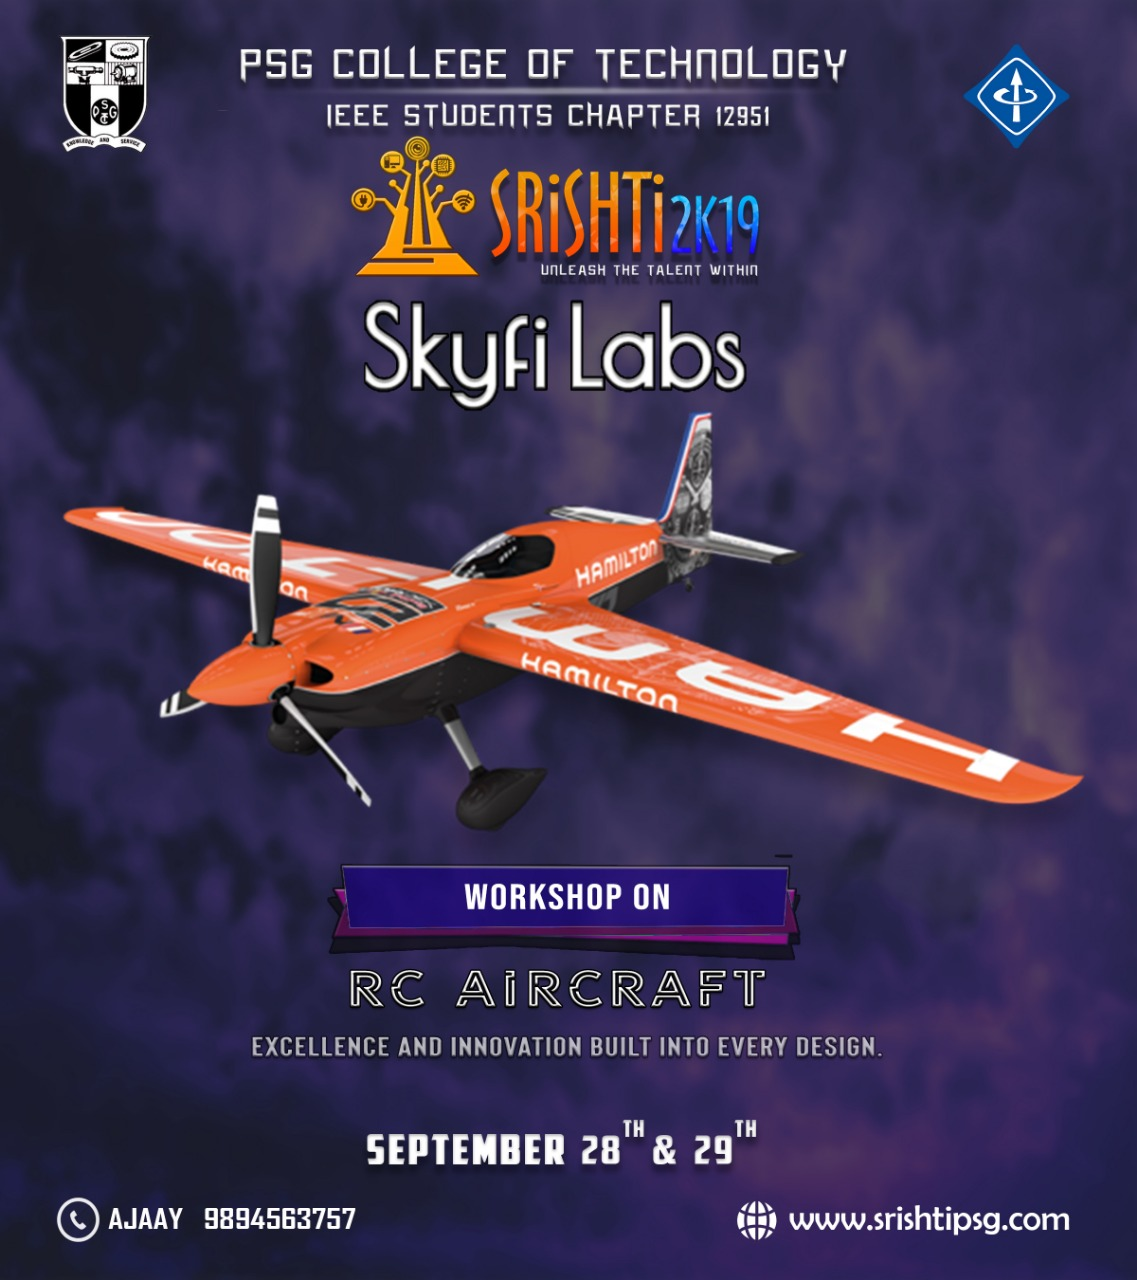 RC Aircraft Design 2019